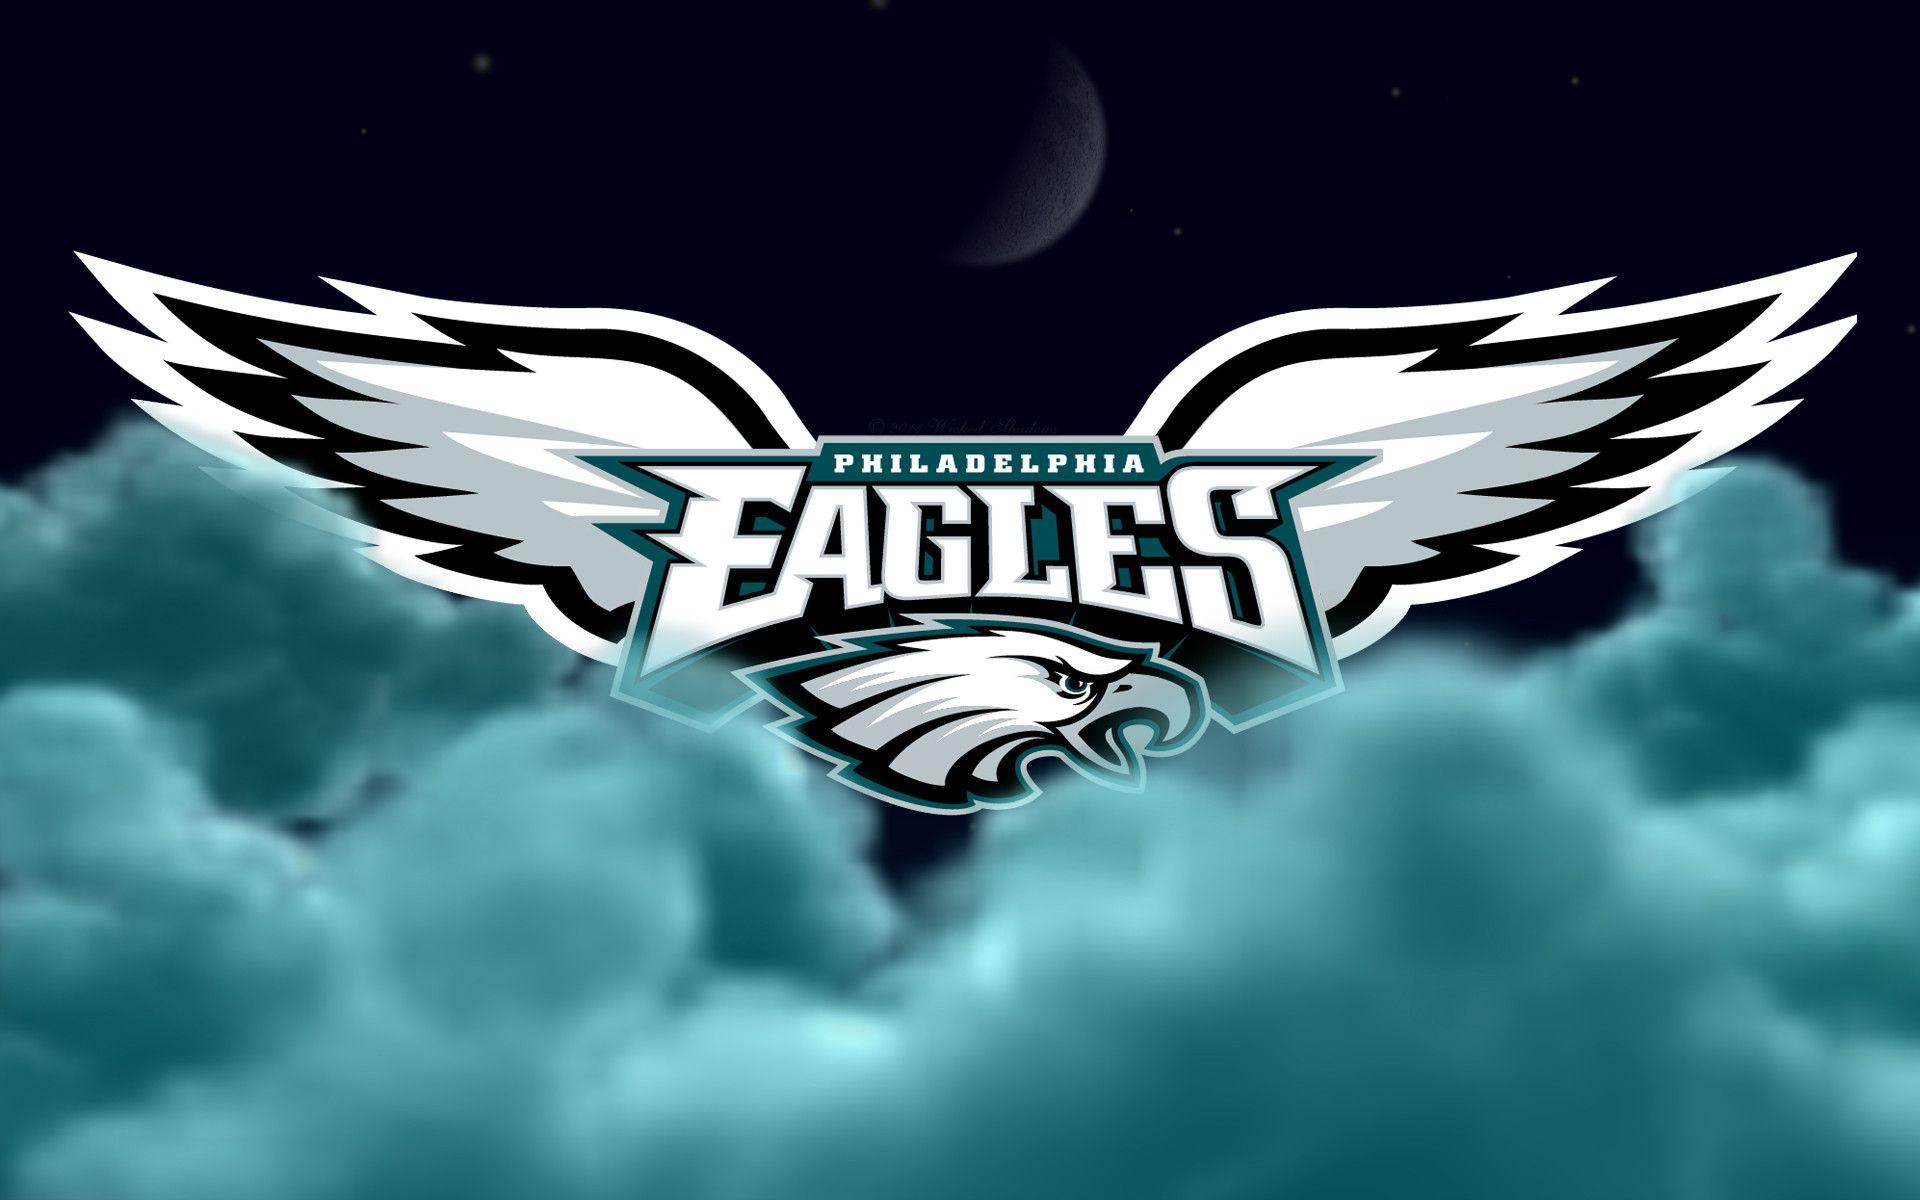 philadelphia eagles wallpapers wallpaper cave. Black Bedroom Furniture Sets. Home Design Ideas